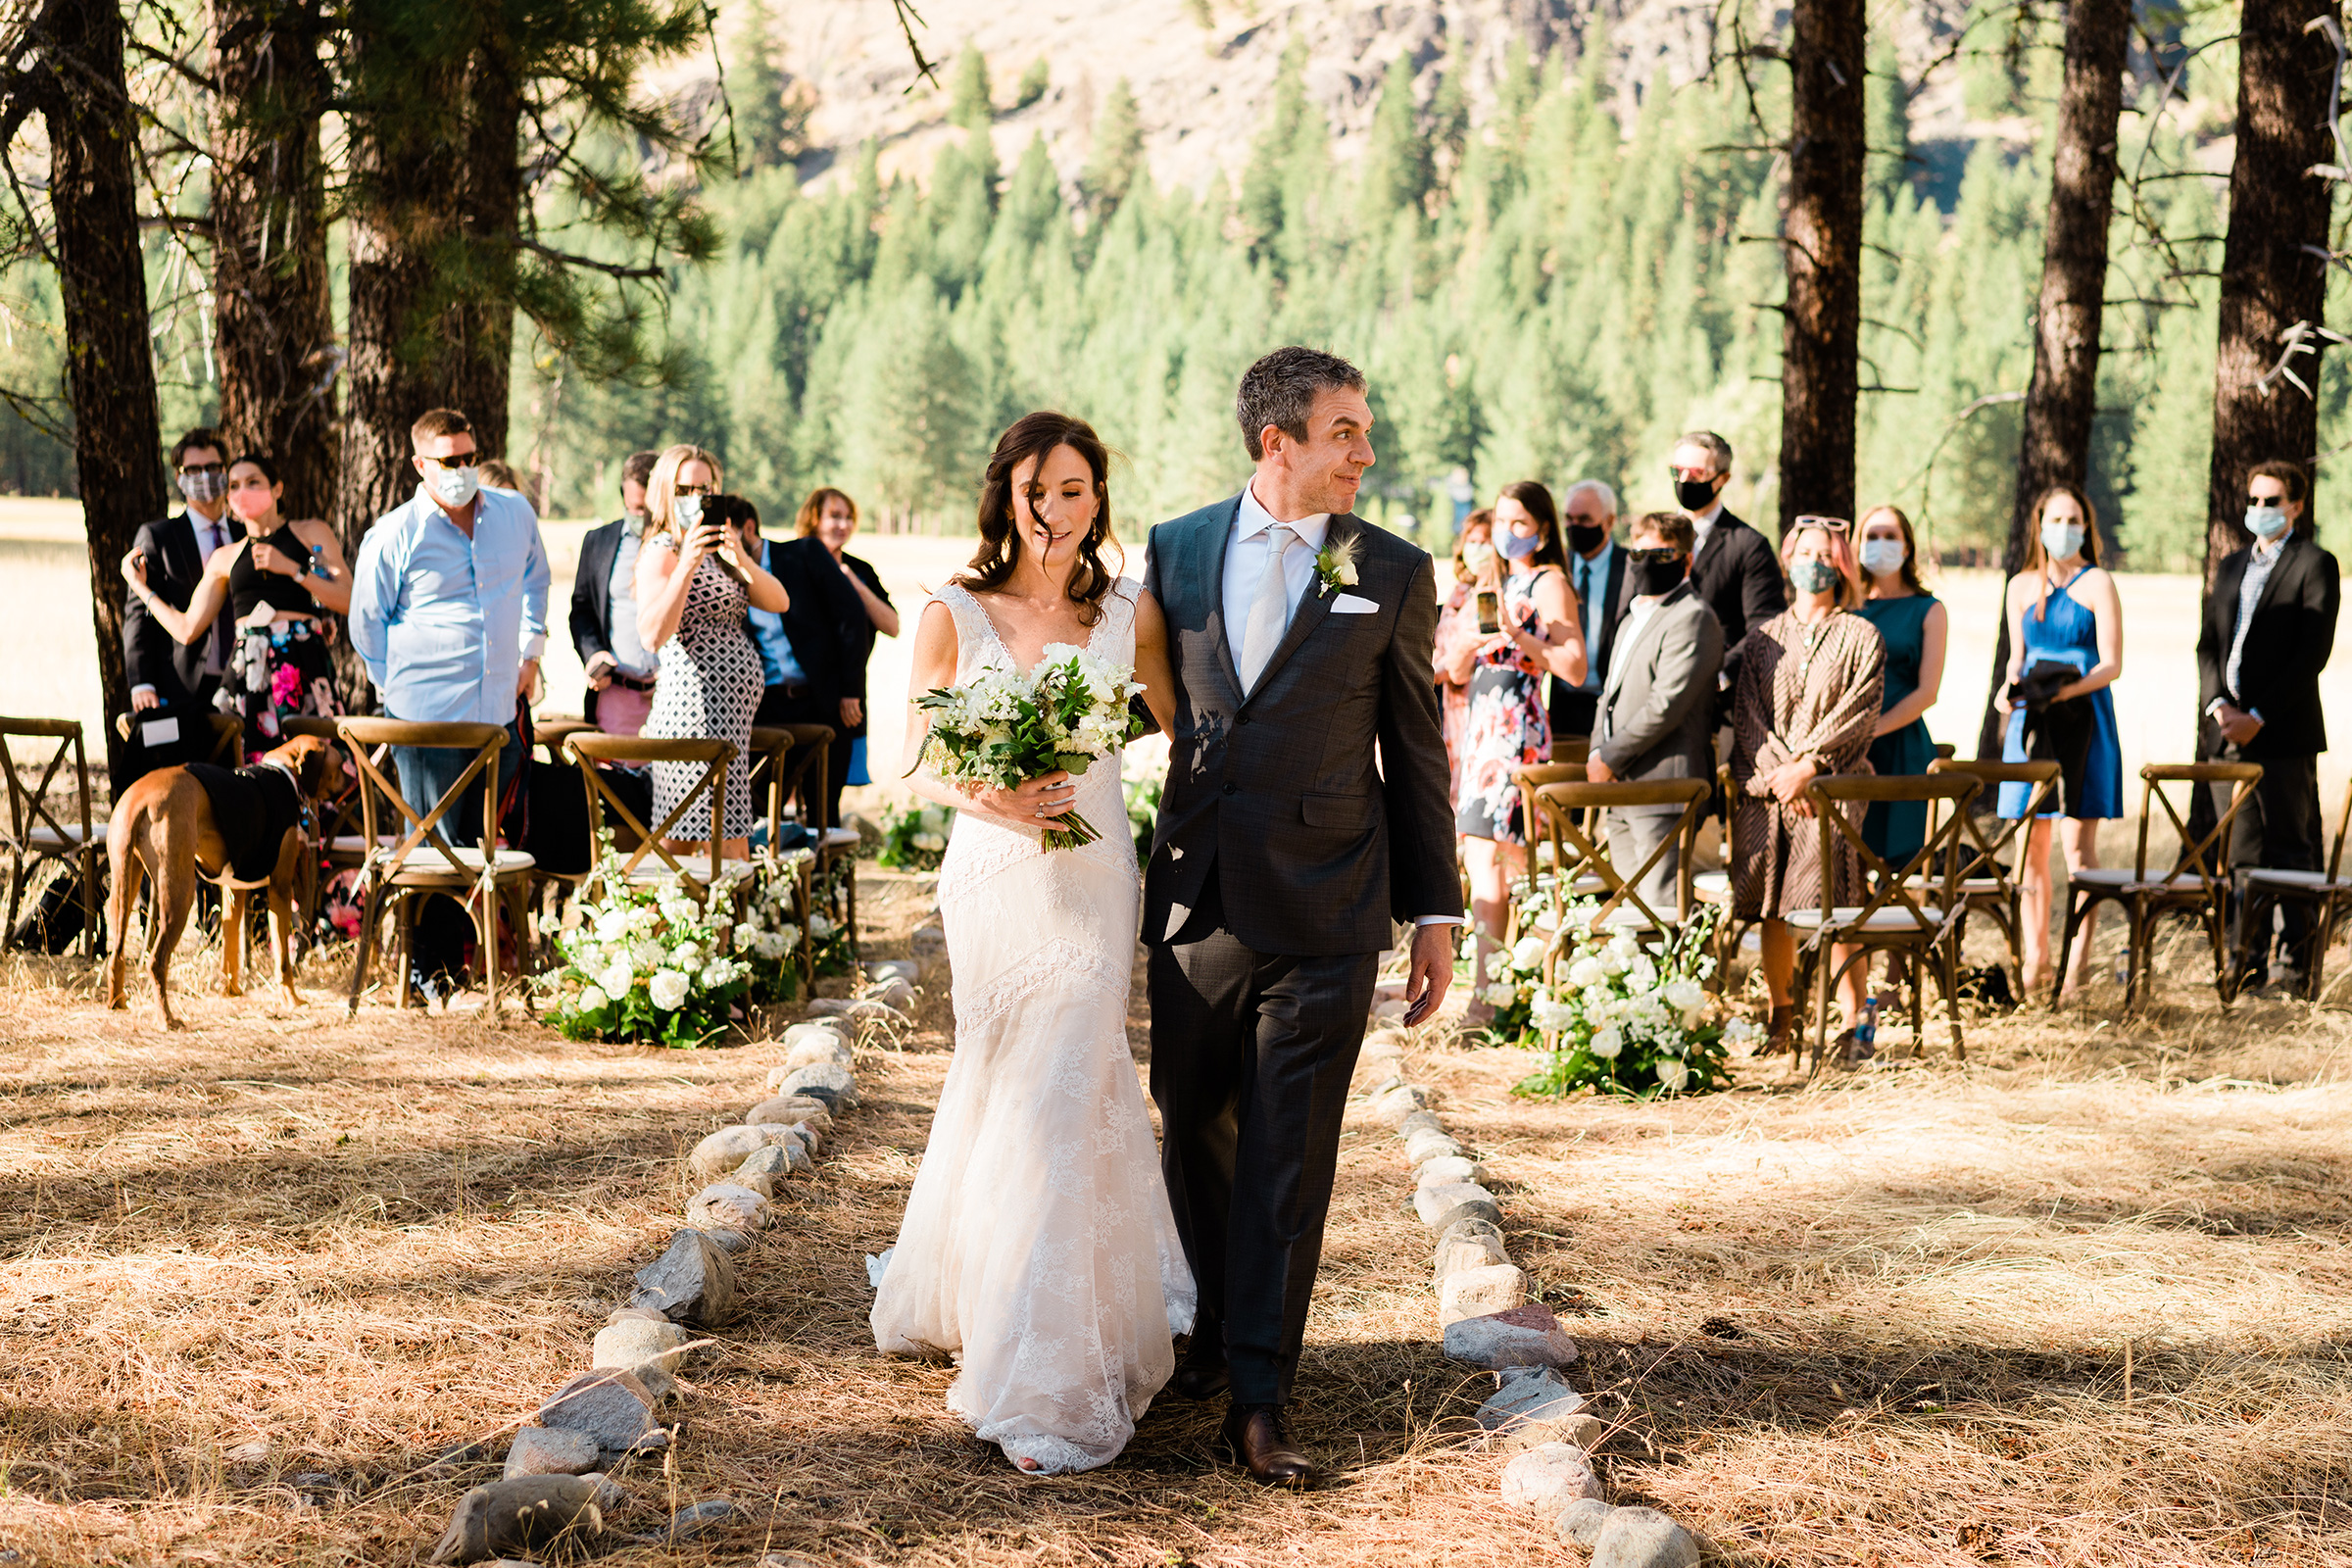 Outdoor recessional - photo by Bradley Hanson Photography